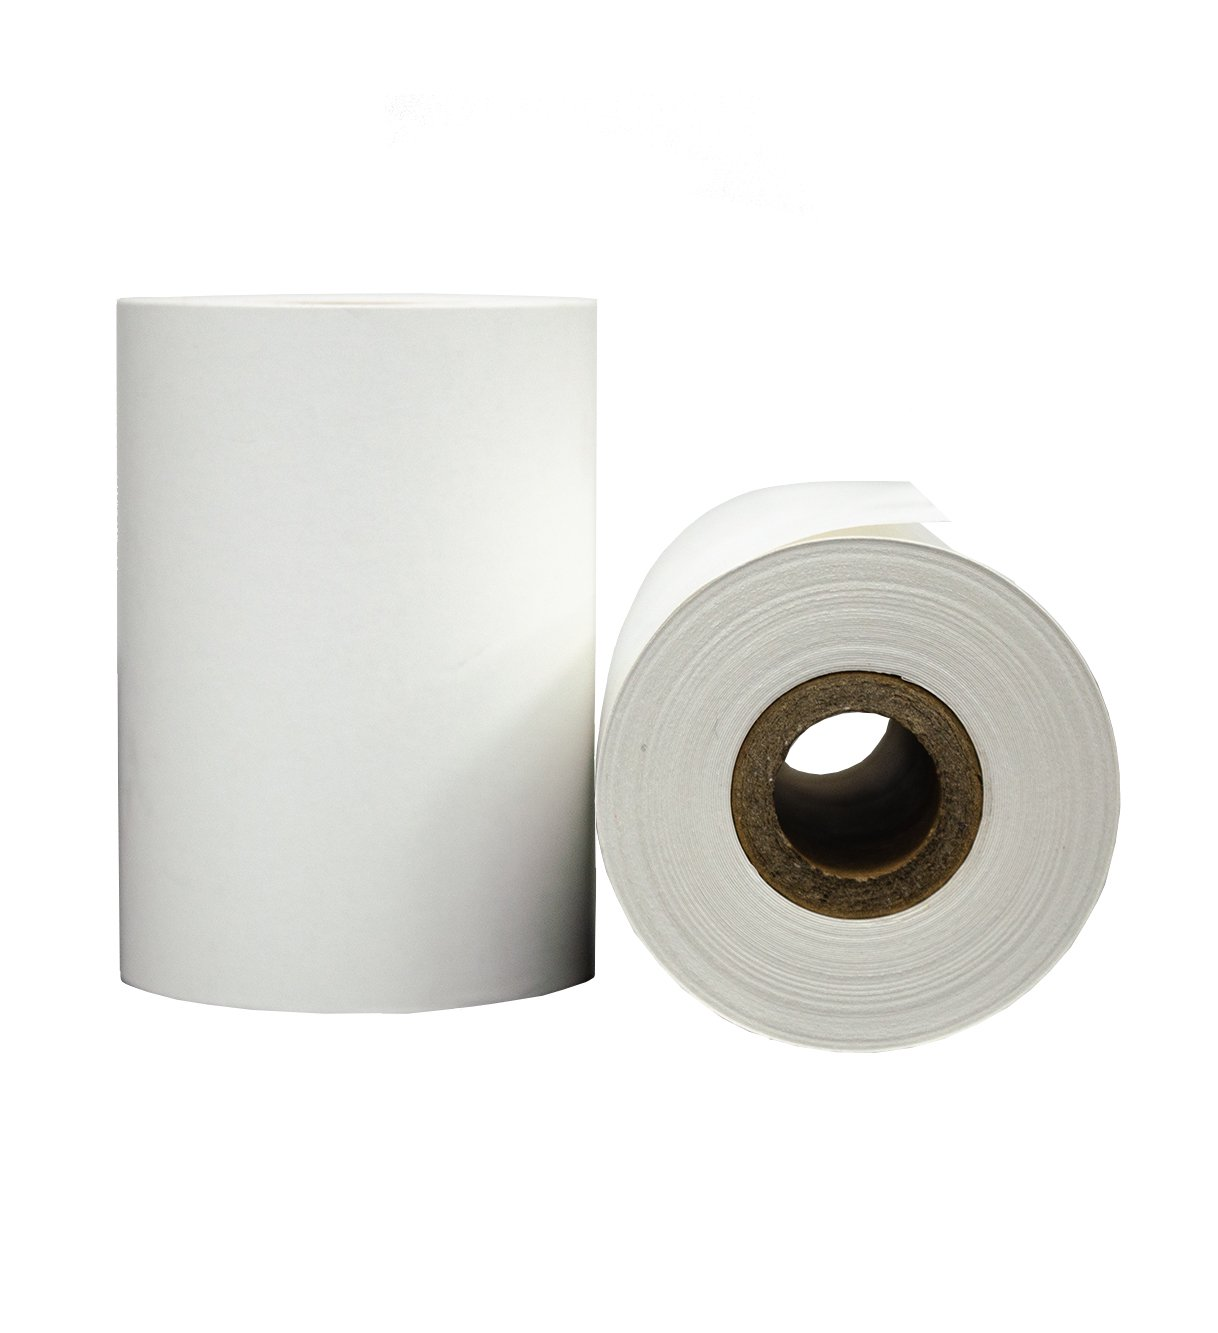 Sanibel MPT-2 Thermal Printer Paper Rolls